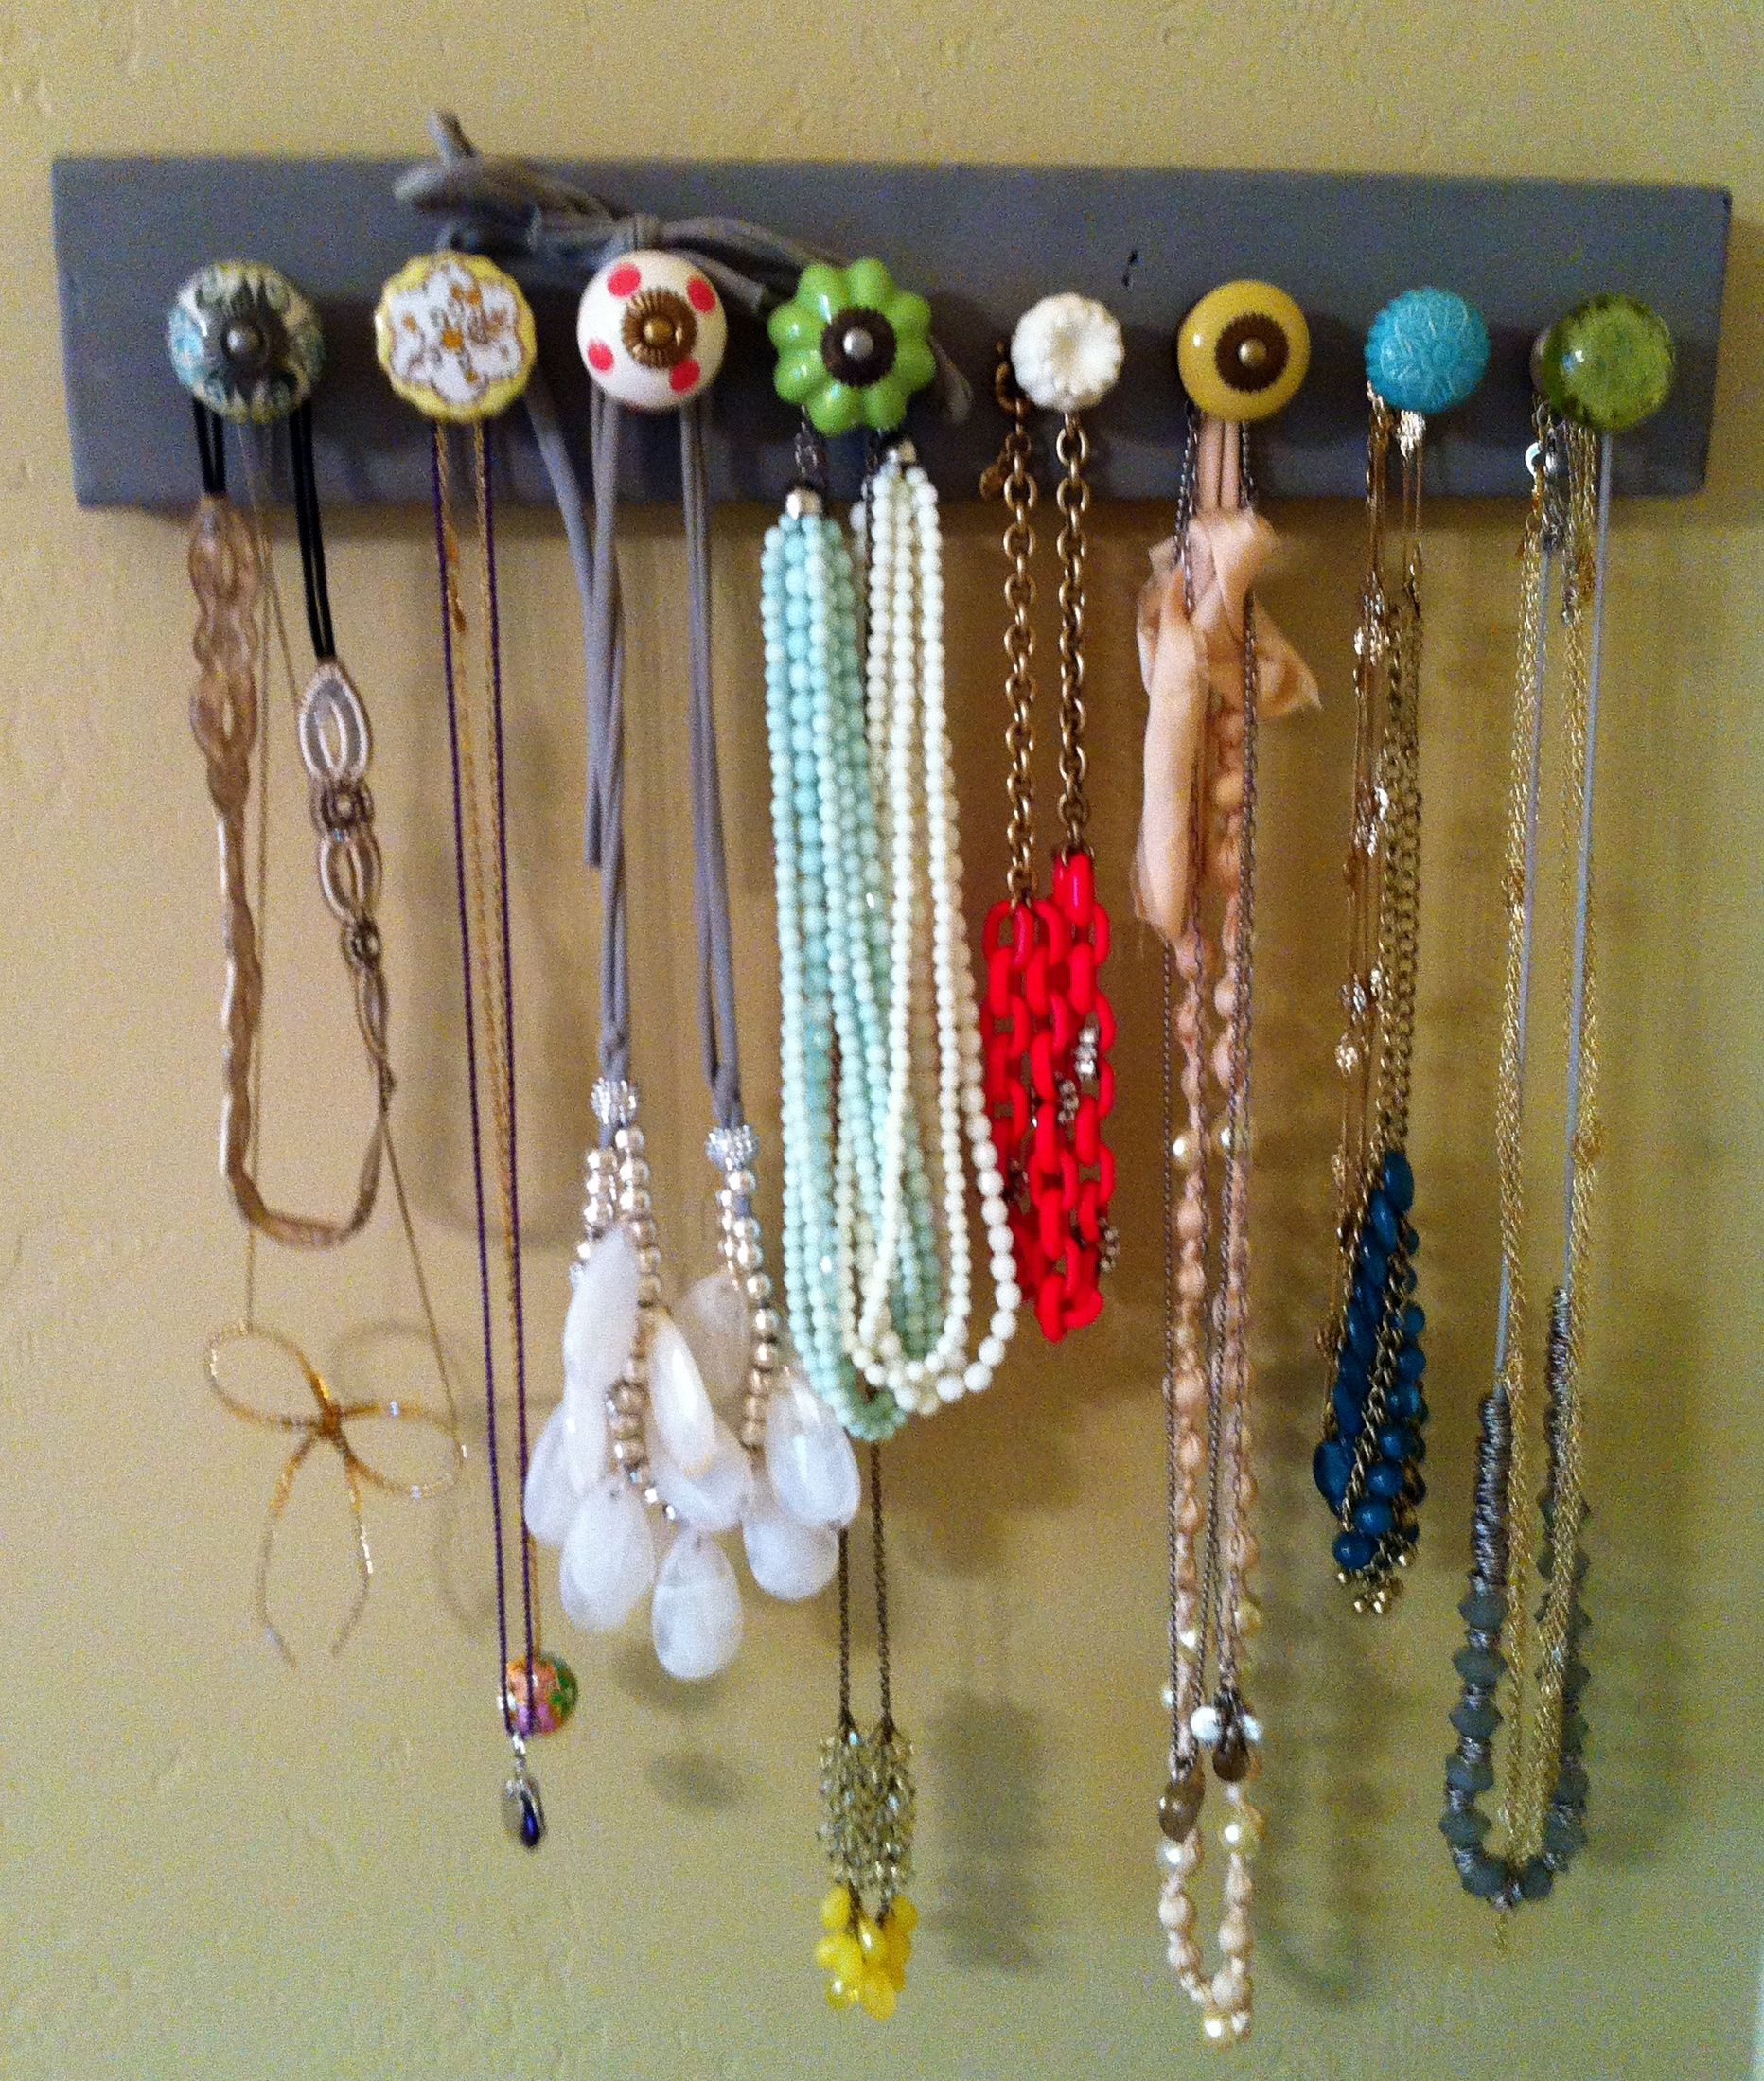 DIY Knob Necklace Holder This Is Exactly What I Need